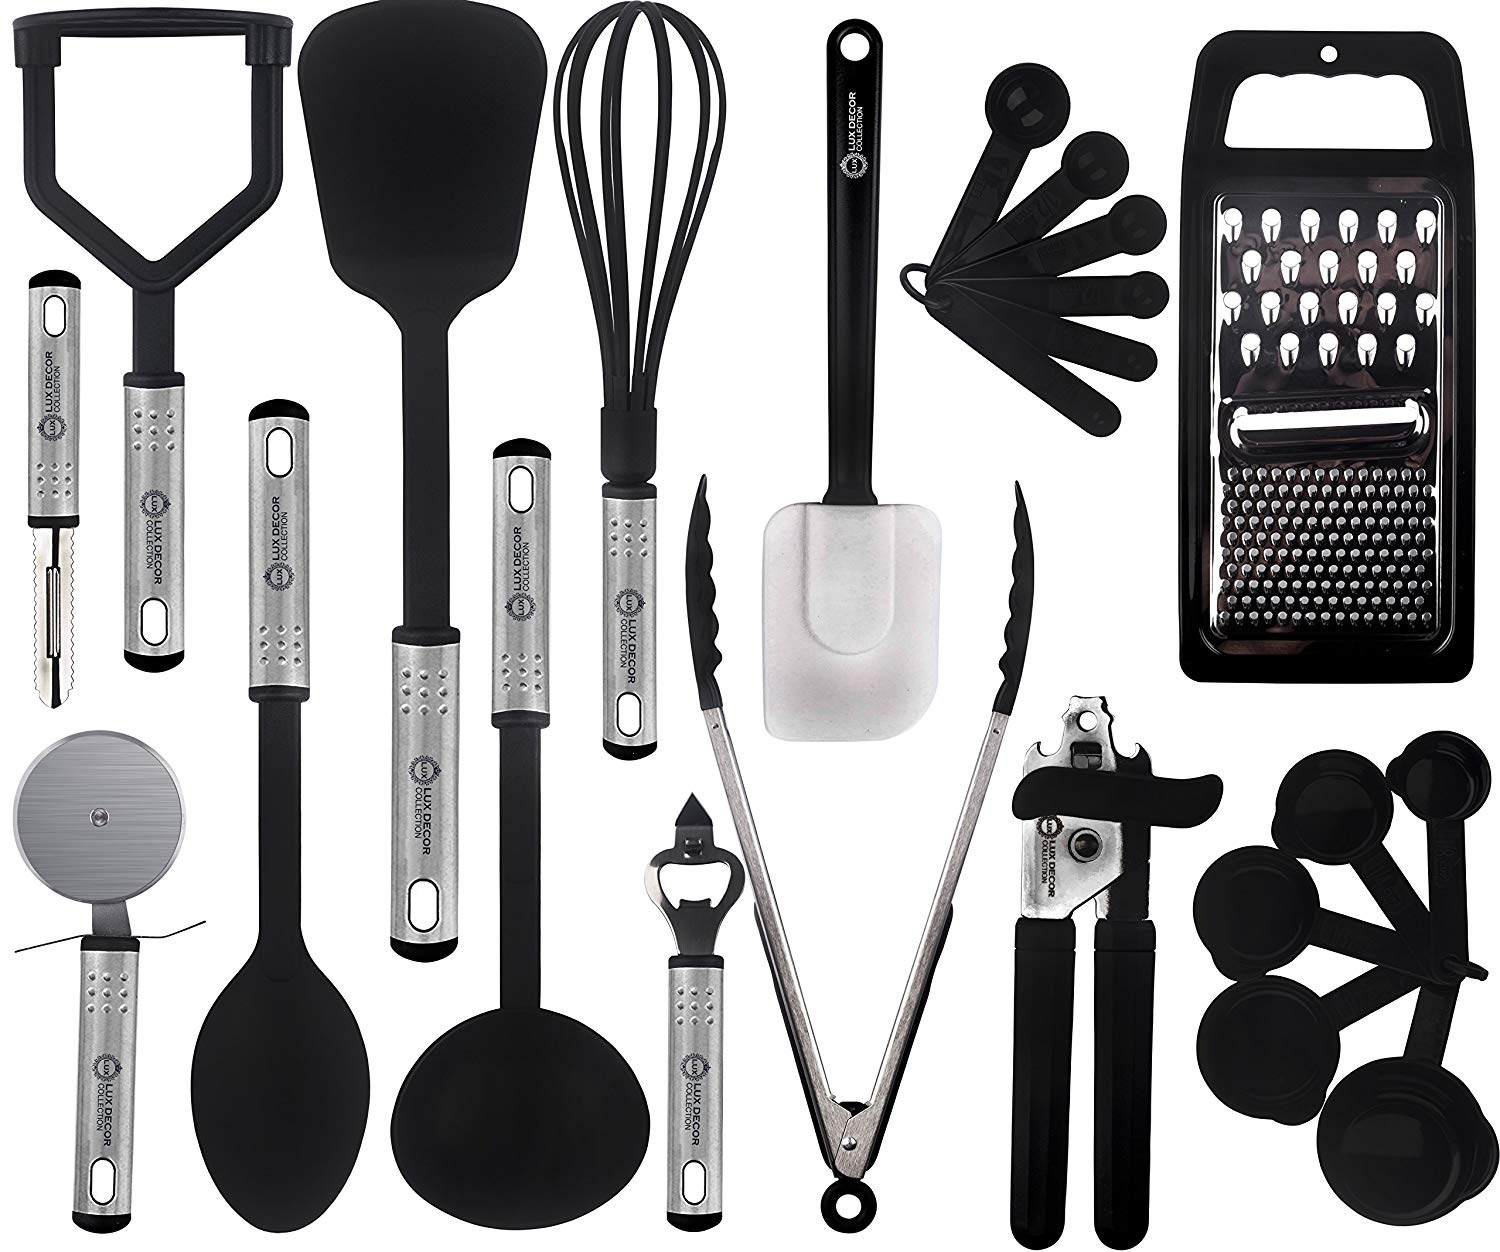 Cooking Utensils Set U2013 23 Pieces U2013 Nylon Kitchen Utensils/Gadgets/Cookware  Sets U2013